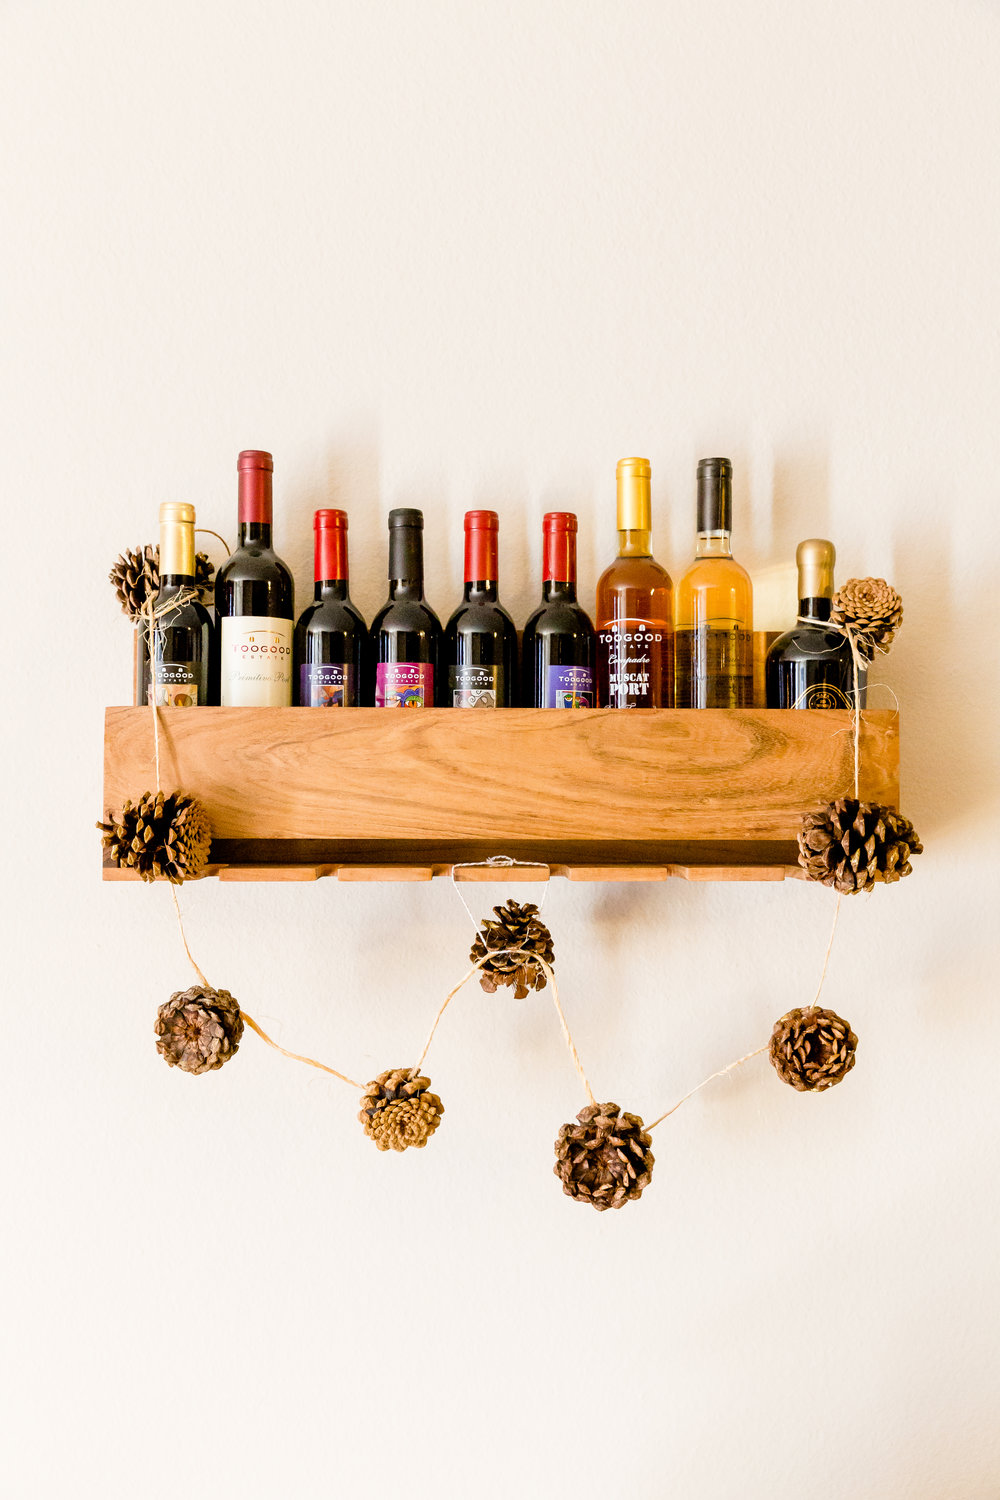 madison katlin photography, pinecone garland, port, toogood, wine